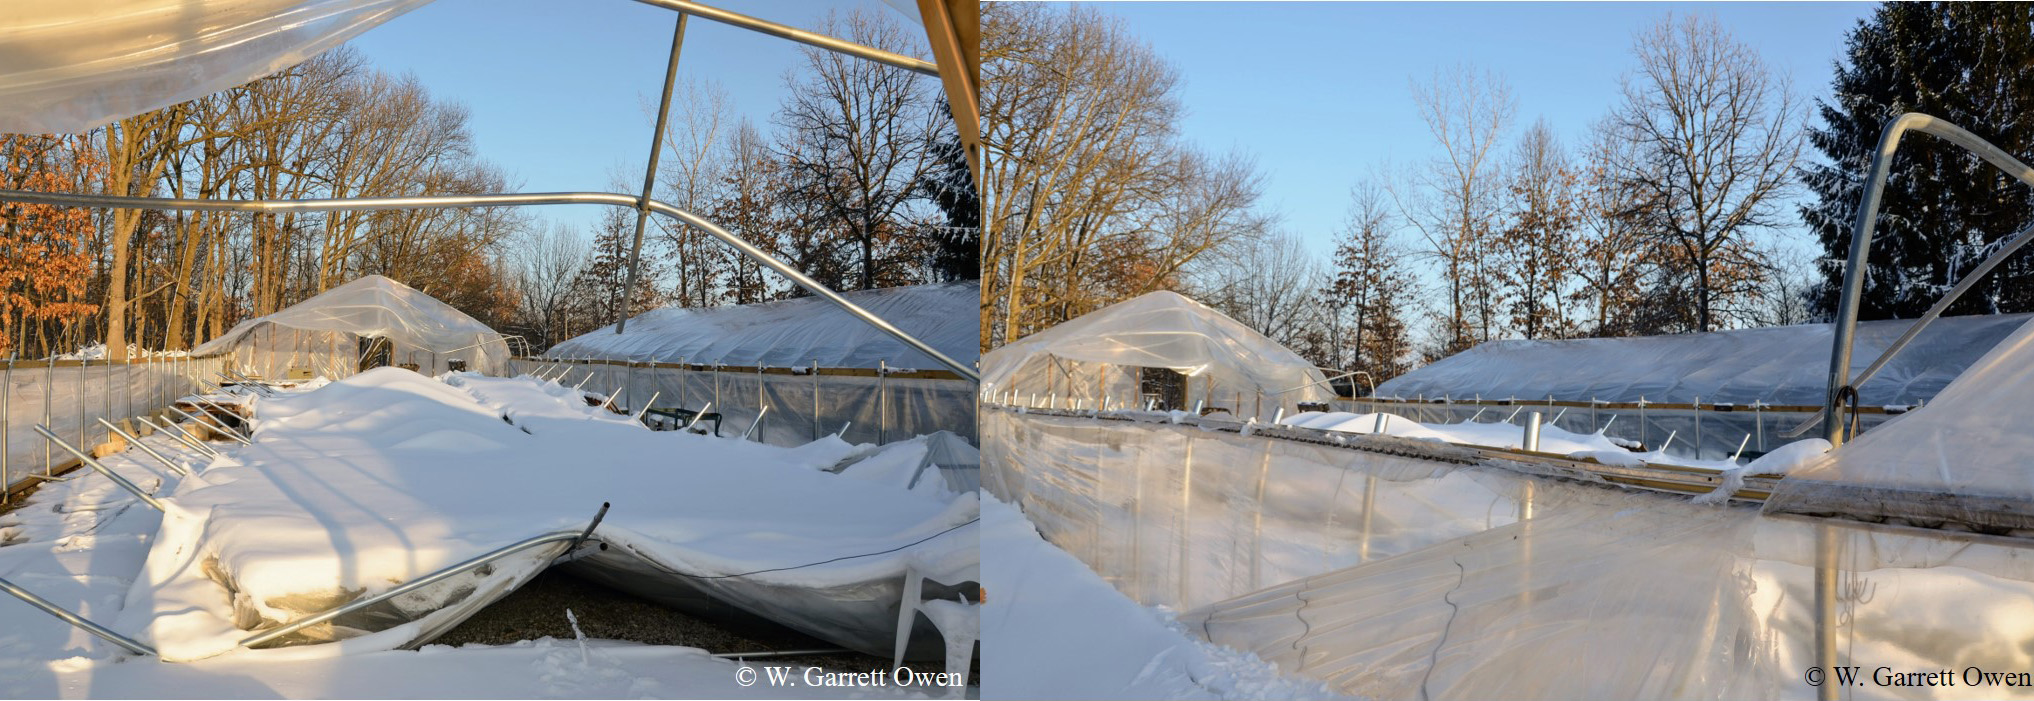 Ensure your greenhouses withstand the snow load morning for Snow load roof pitch